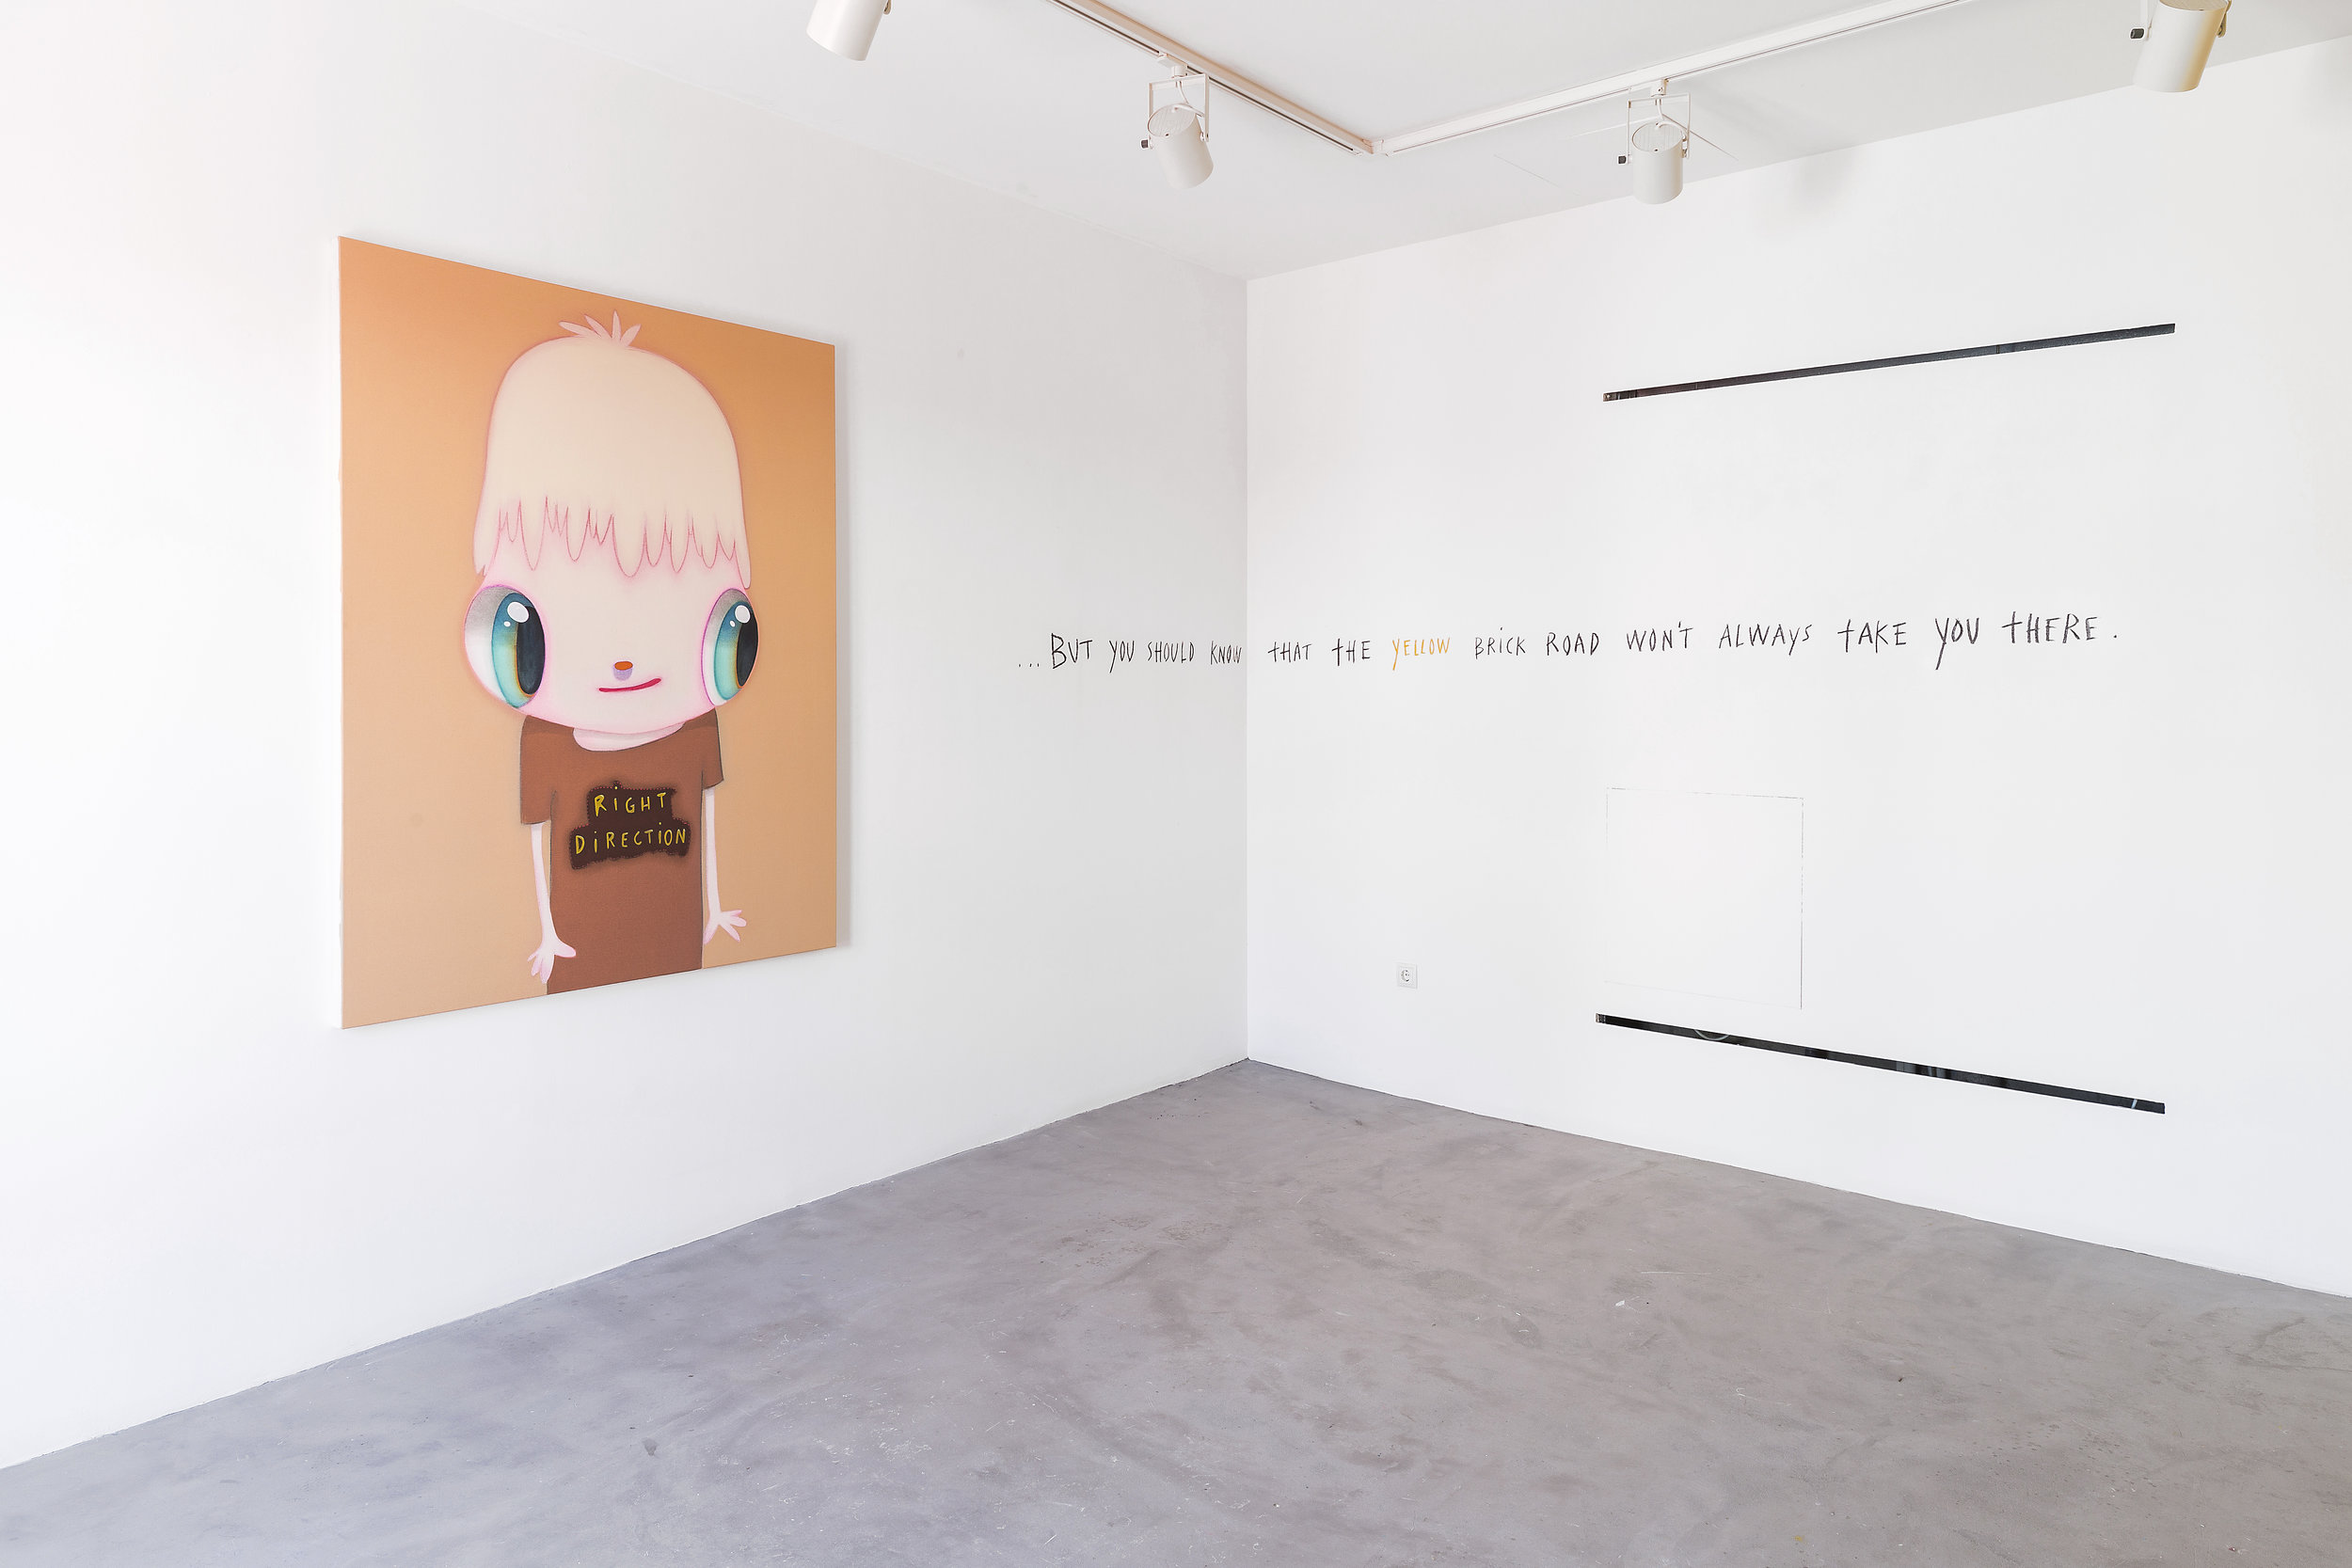 Installation view. Photo by Thanasis Gatos.